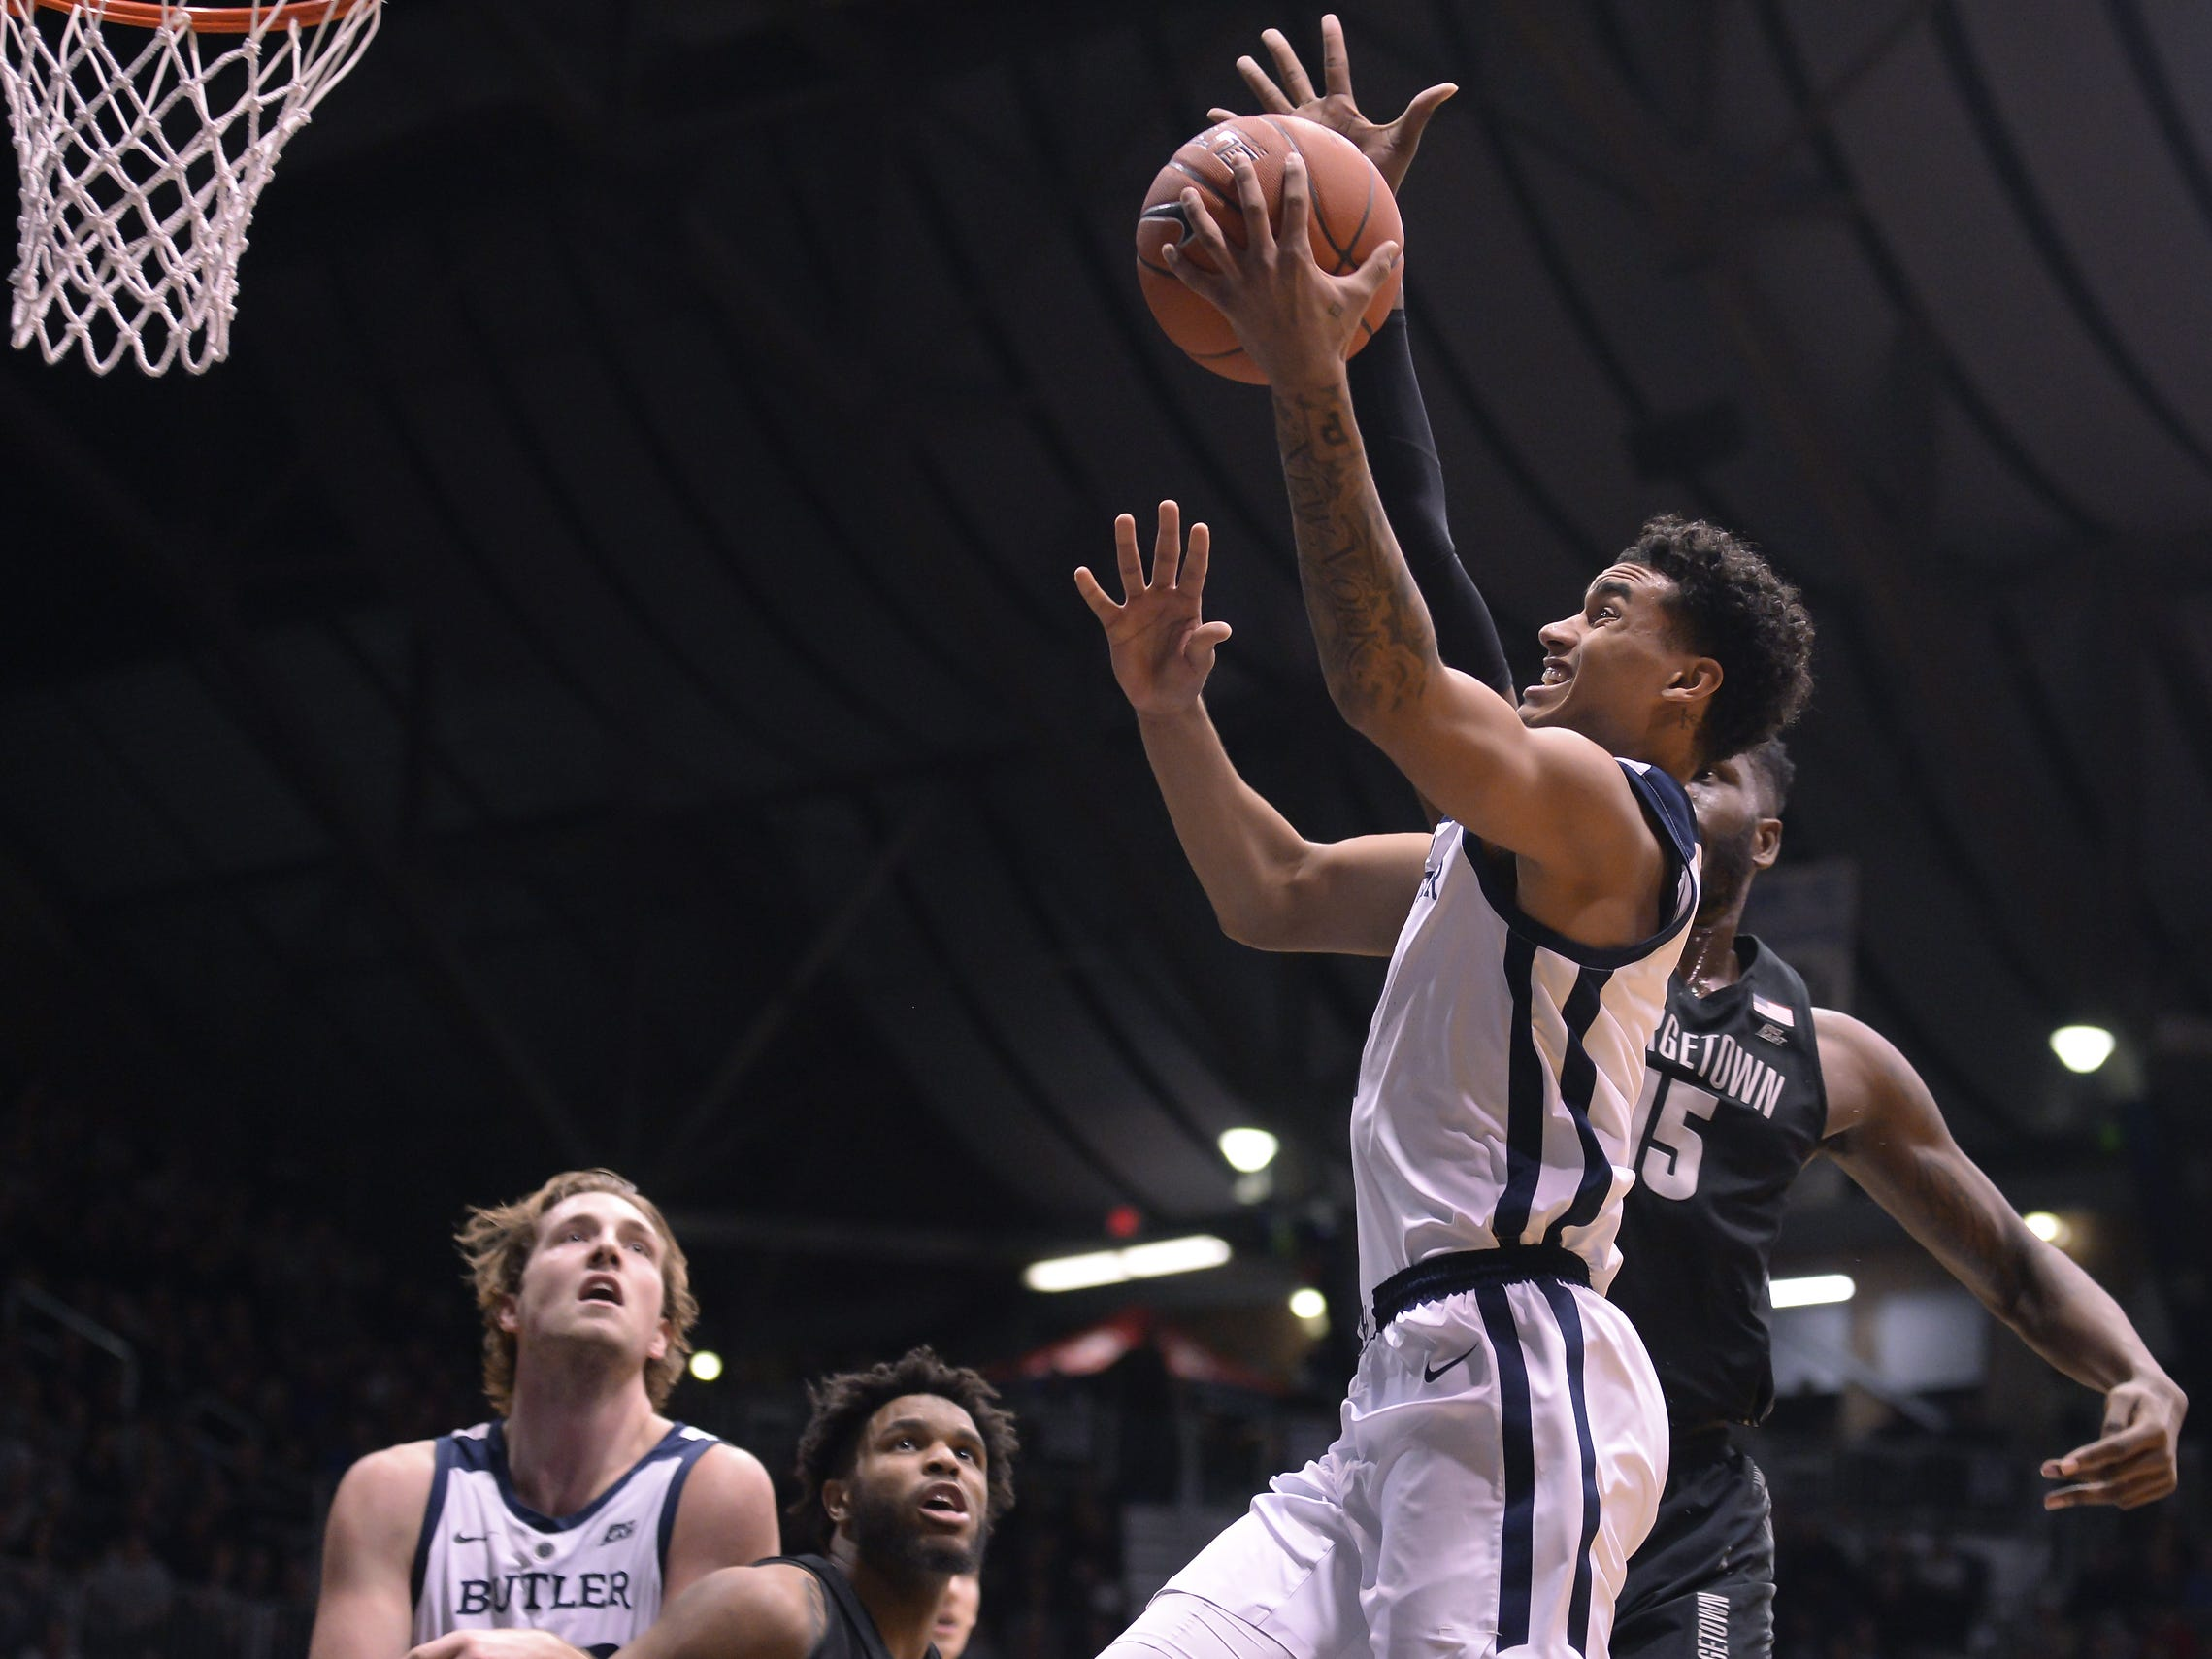 Butler Bulldogs forward Jordan Tucker (1) scores during the first half of game action between Butler University and Georgetown University, at Hinkle Fieldhouse in Indianapolis, Indiana on Wednesday, Jan. 2, 2019.